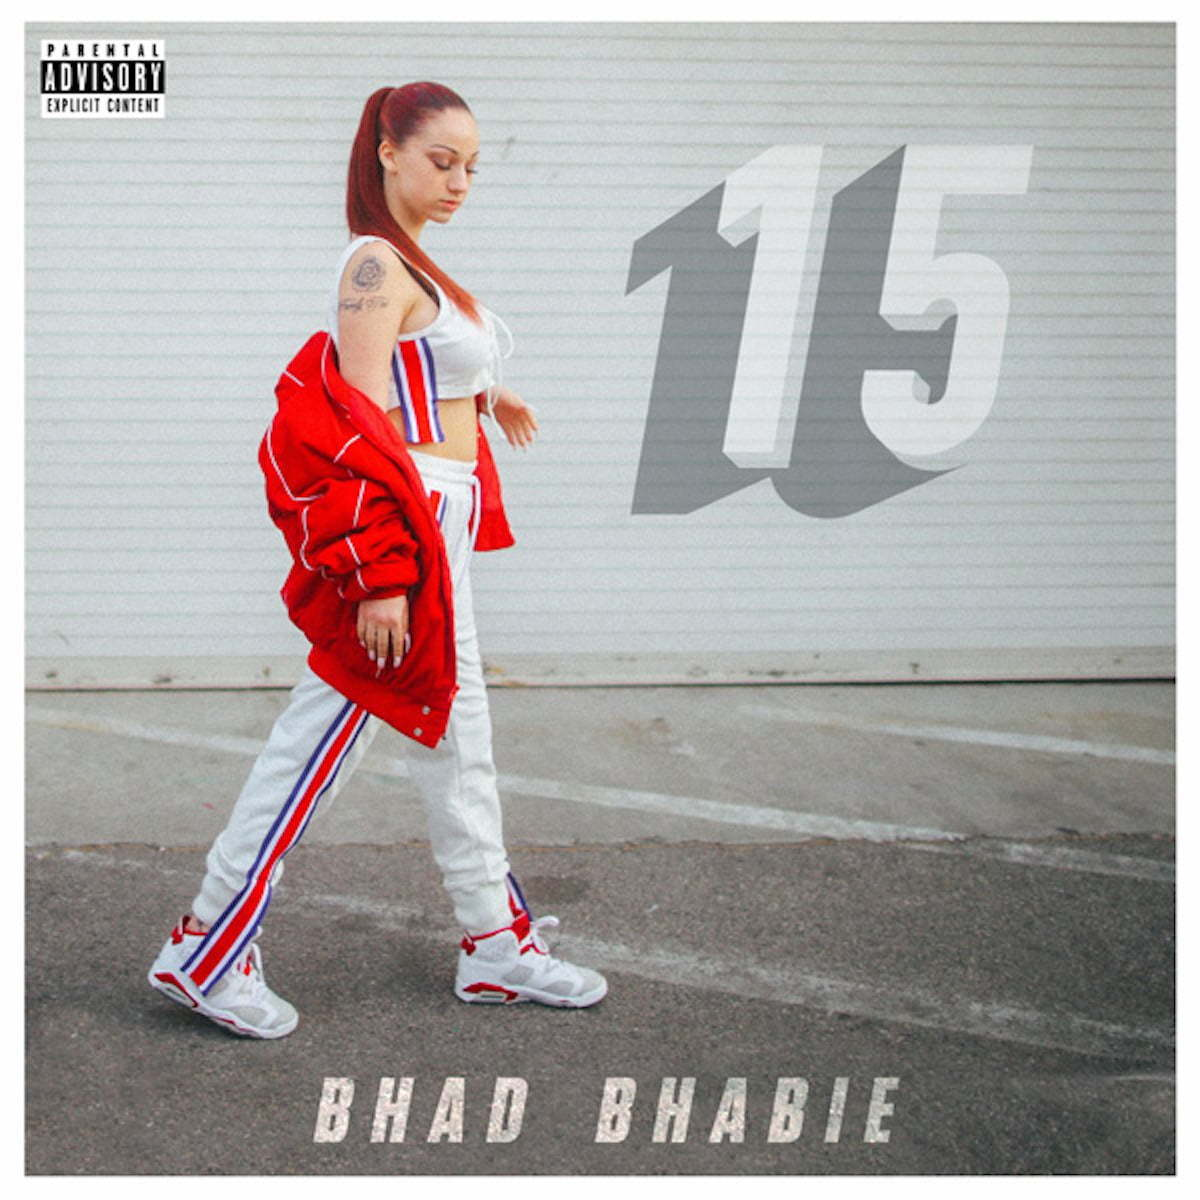 Bhad Bhabie 15 mixtape cover